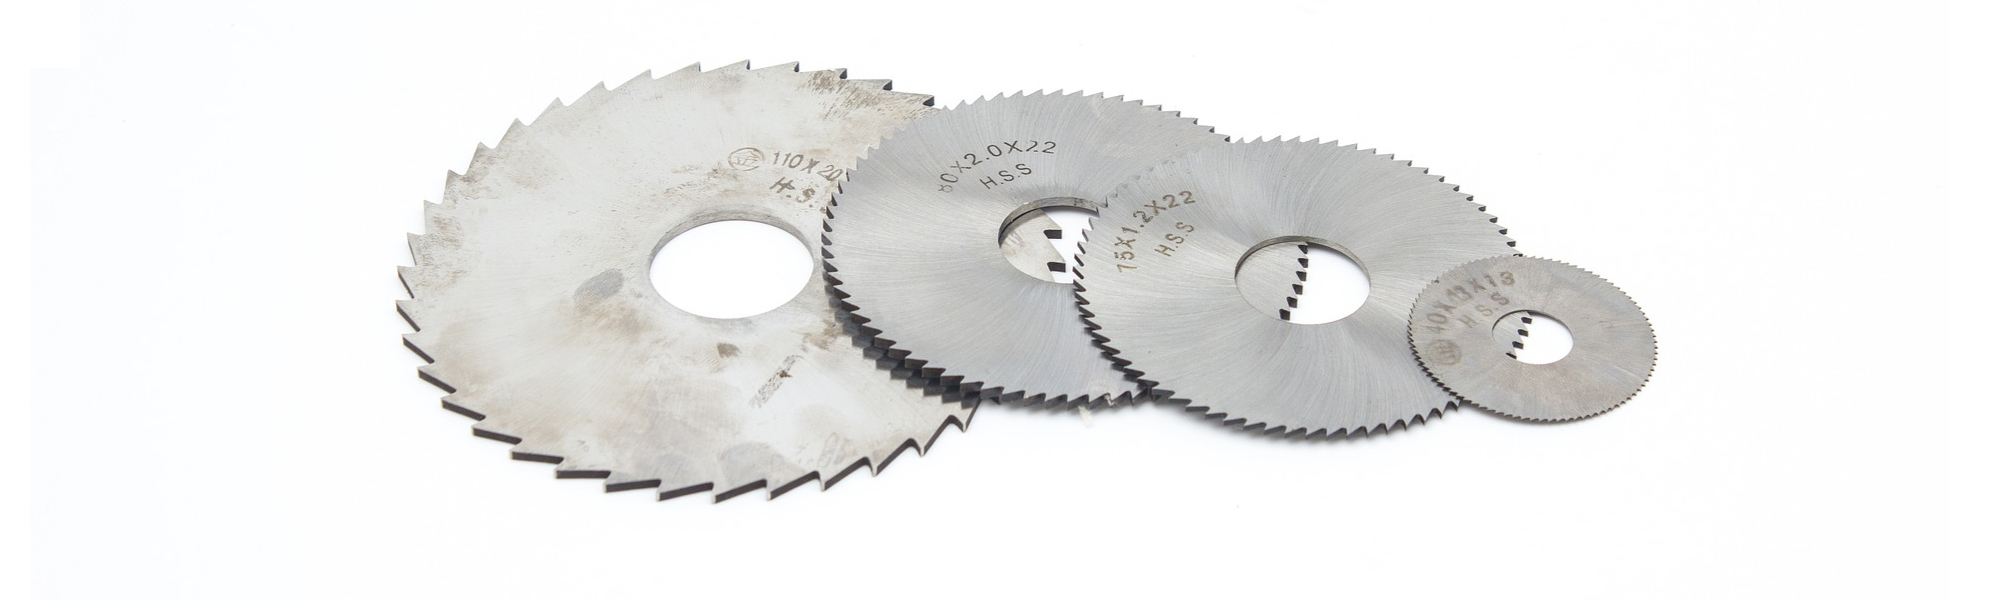 industrial band saws